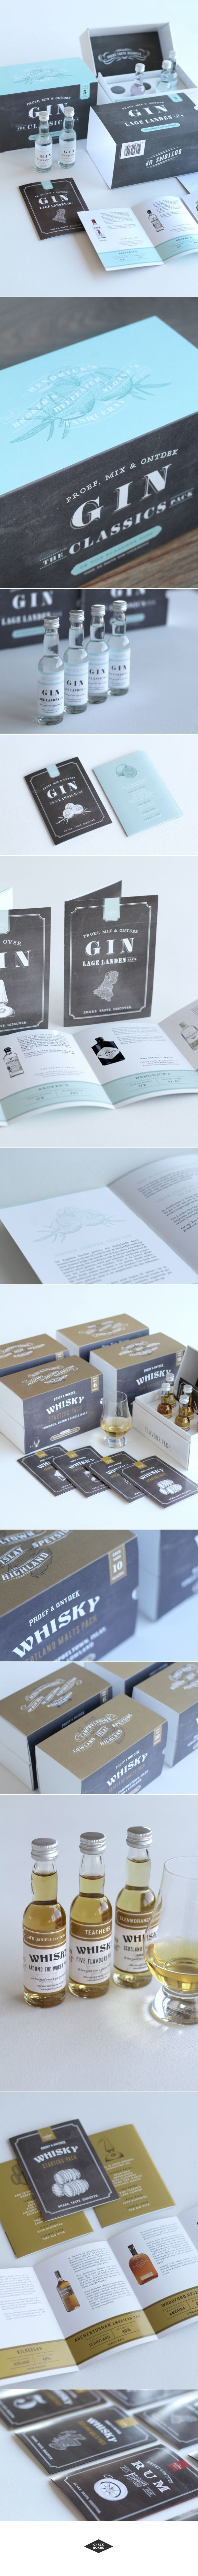 Whisky, Gin, Rum & Cognac Package design and Branding of The Flavour Company - All illustratons and most of the lettering was drawn by hand.  Click on the image to see more handlettering projects. www.chalkboard.nl